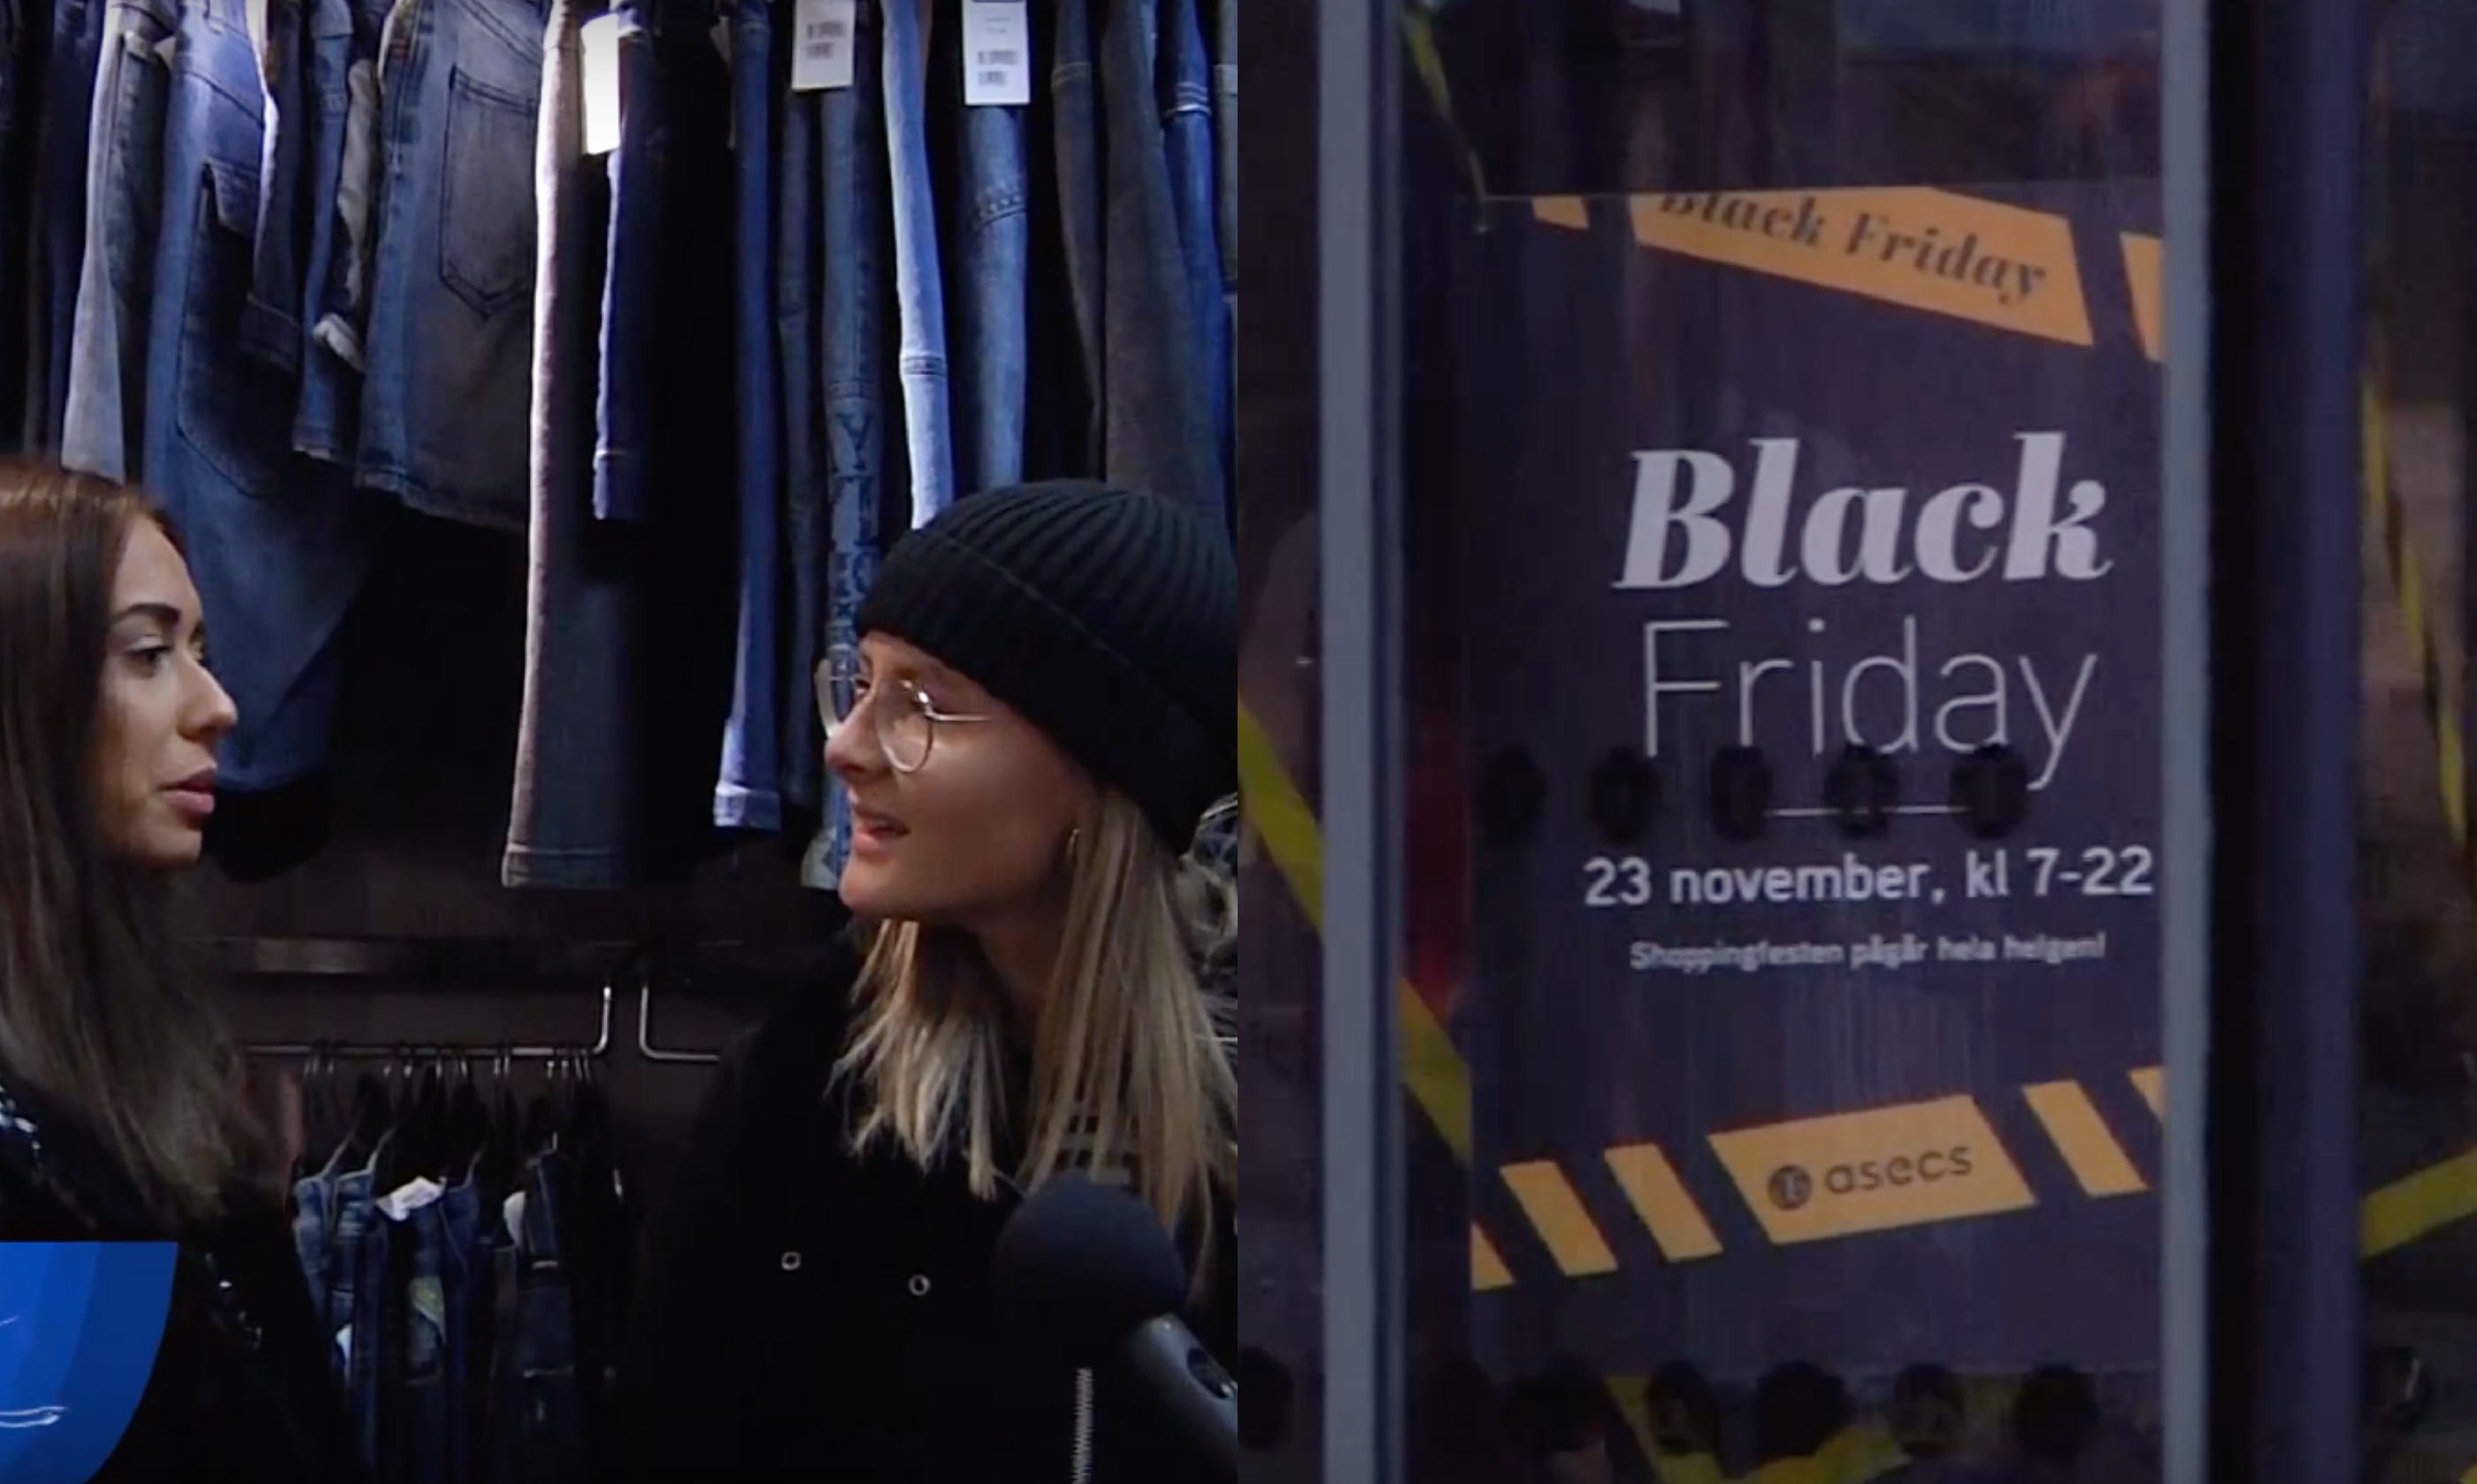 Årets julklapp – en protest mot Black Friday